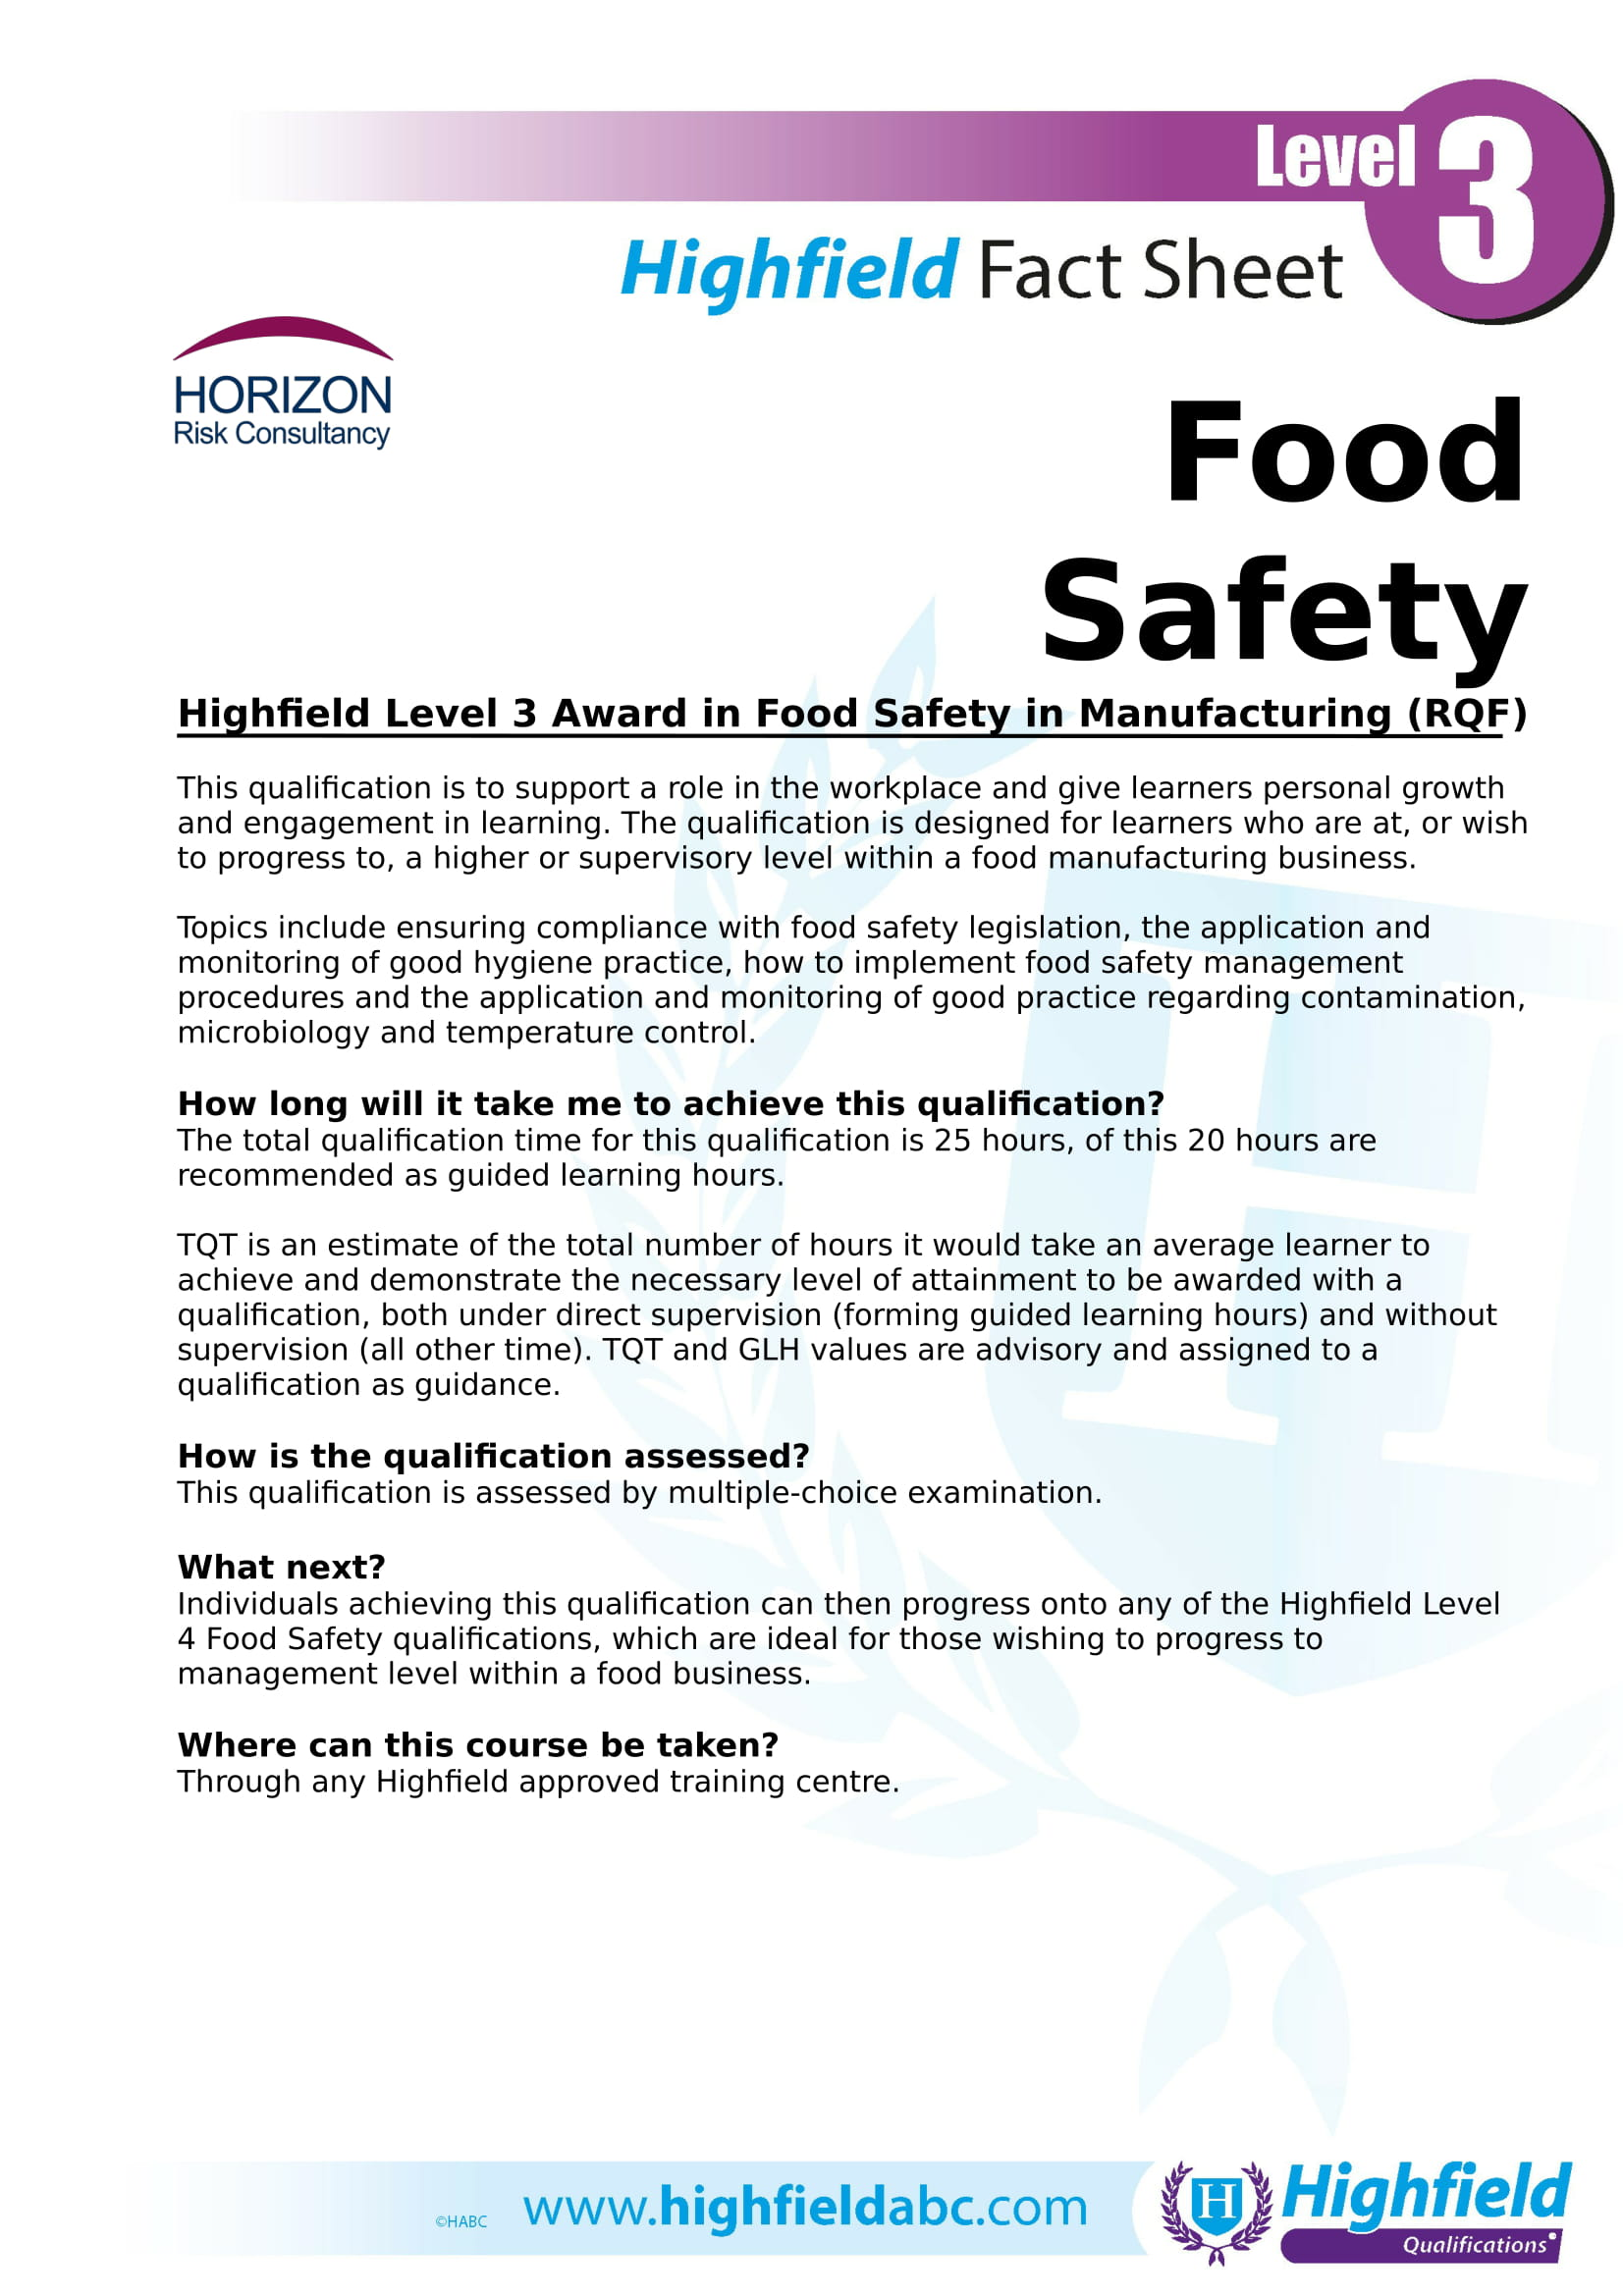 Highfield Level 3 Award in Food Safety in Manufacturing (RQF